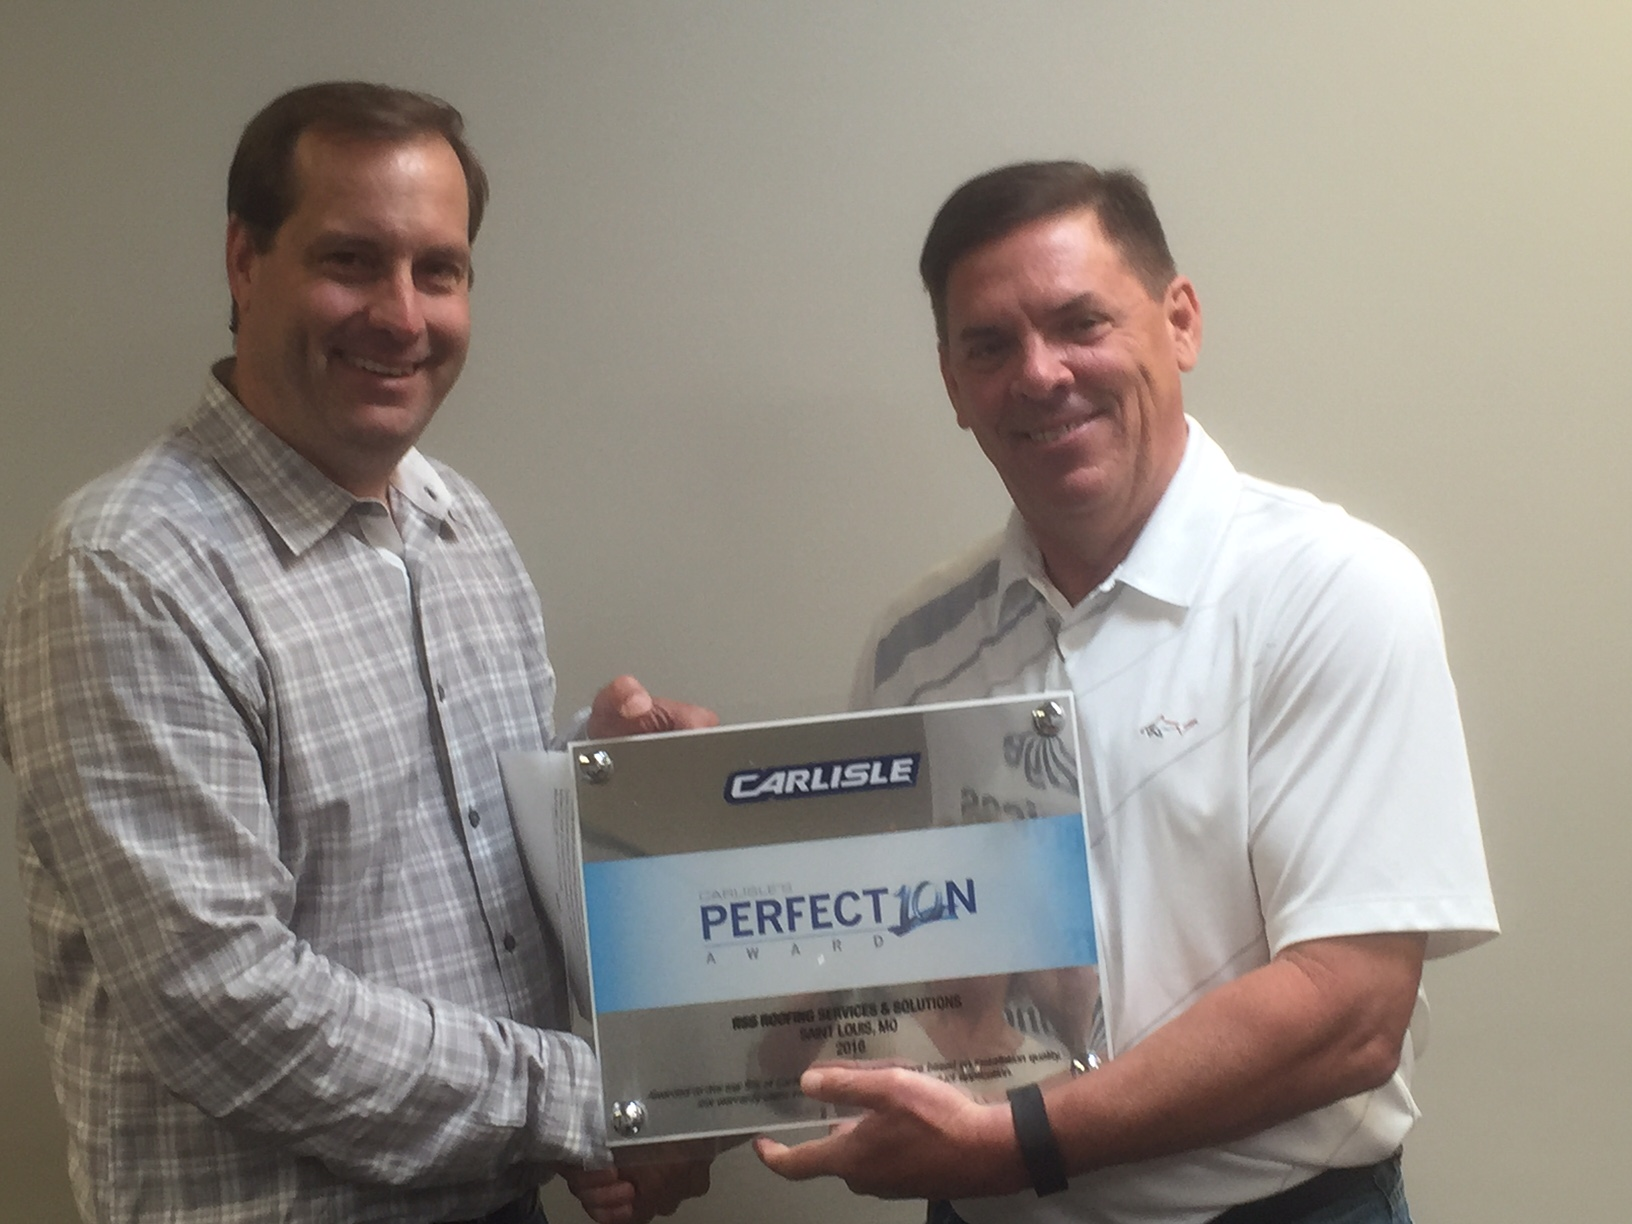 Joe Lauberth, with Roofing Services & Solutions (RSS) of St. Louis, Missouri received Carlisle's Perfection Award from Greg Luna, President of Luna and Associates.